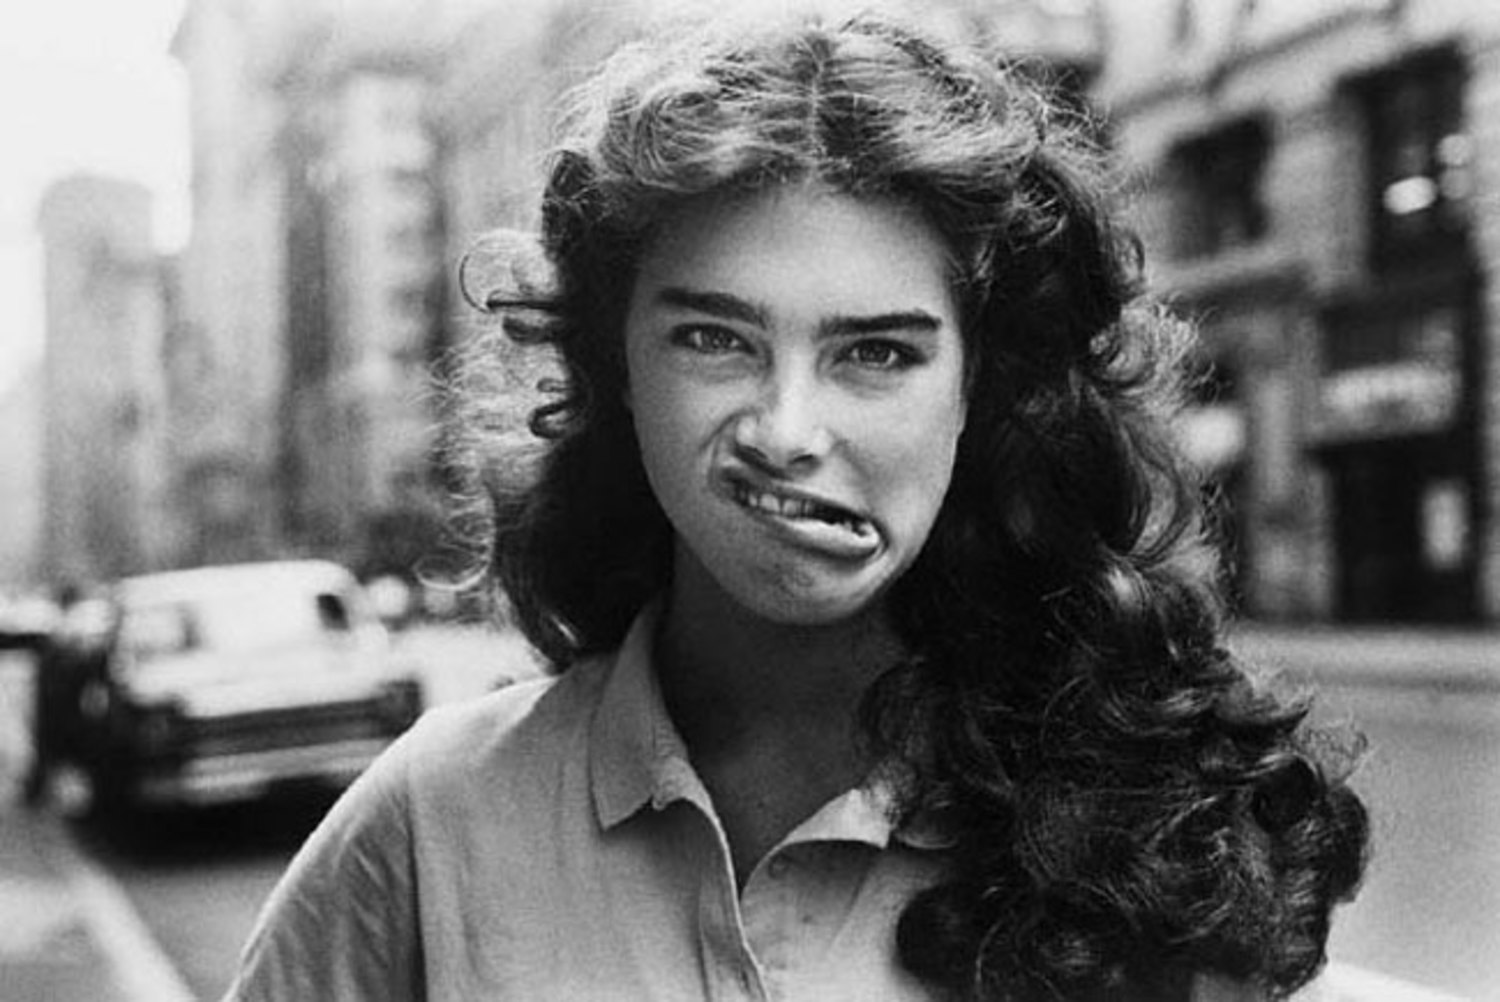 Brooke Shields on the street. NYC, 1981